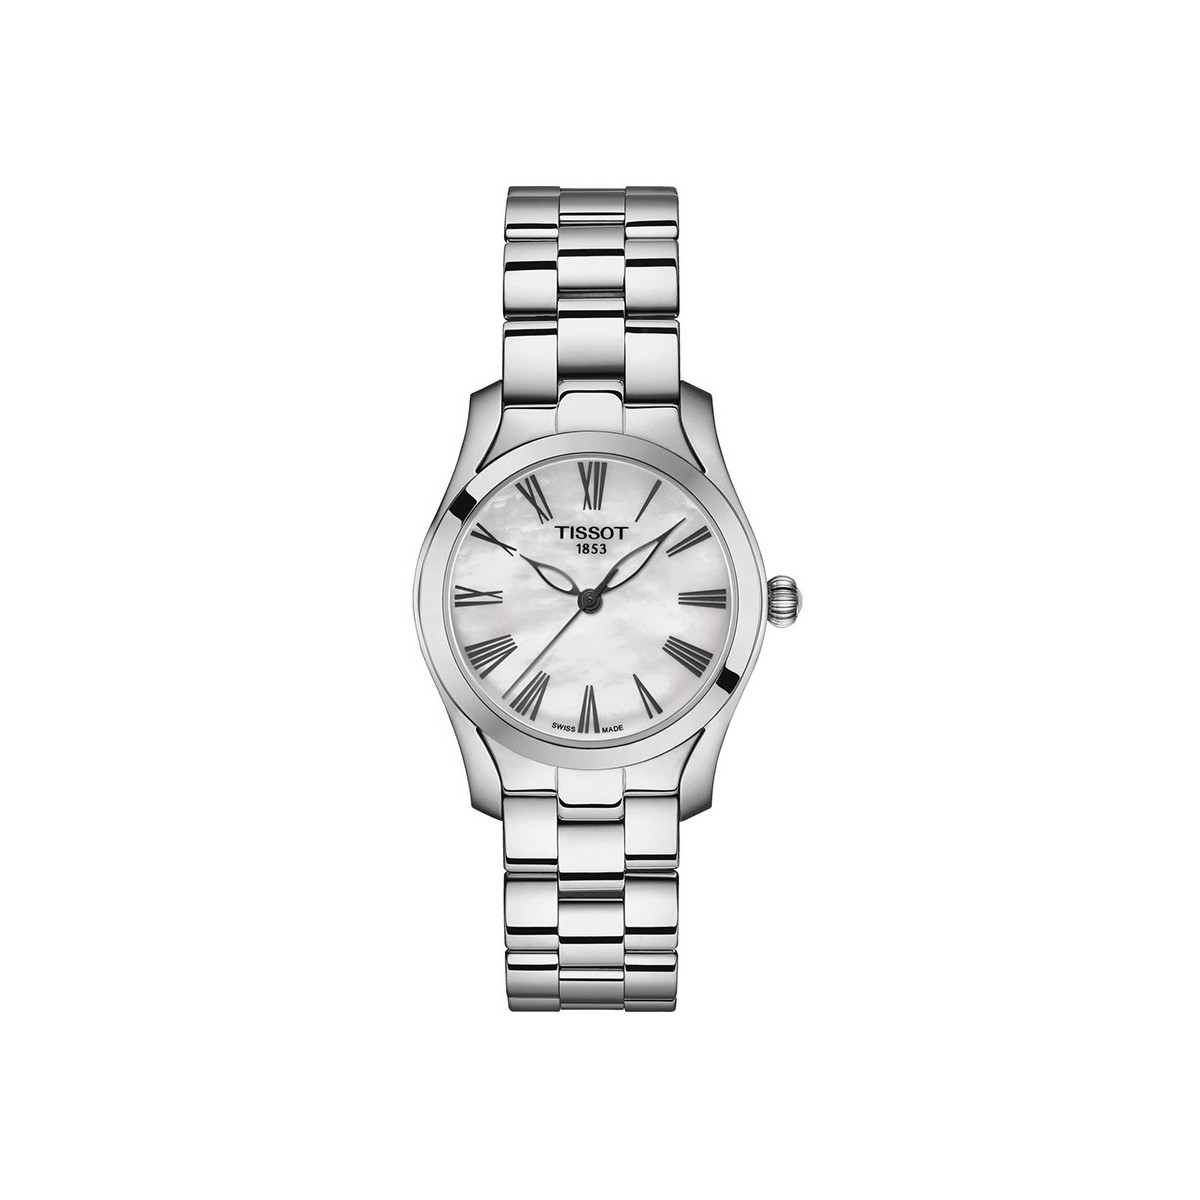 TISSOT T-WAVE MOTHER OF PEARL DIAL